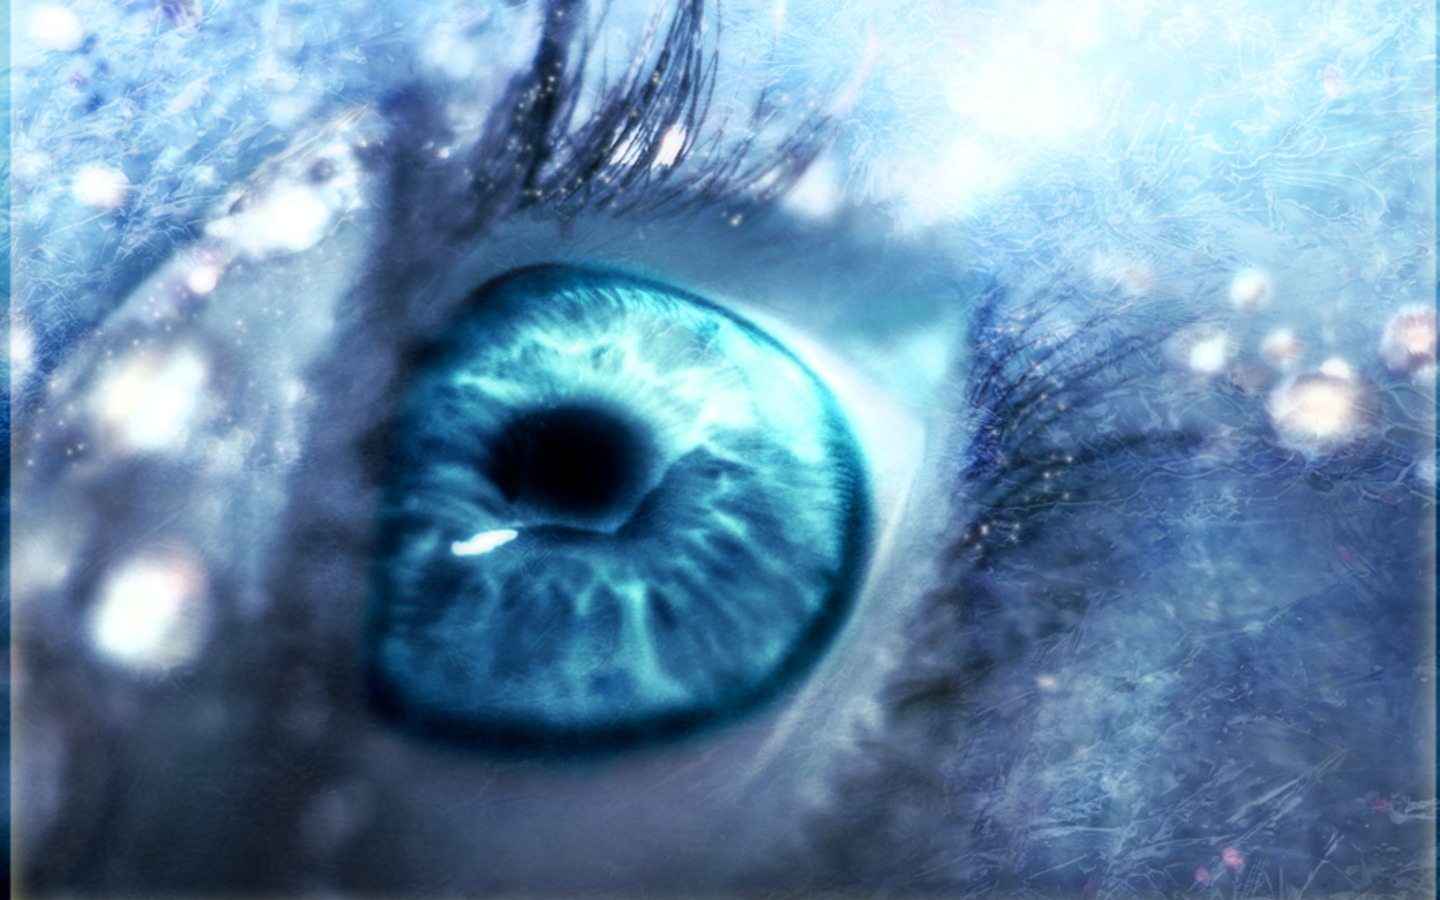 Blue Eyes HD photography images 1440x900 | PIXHOME